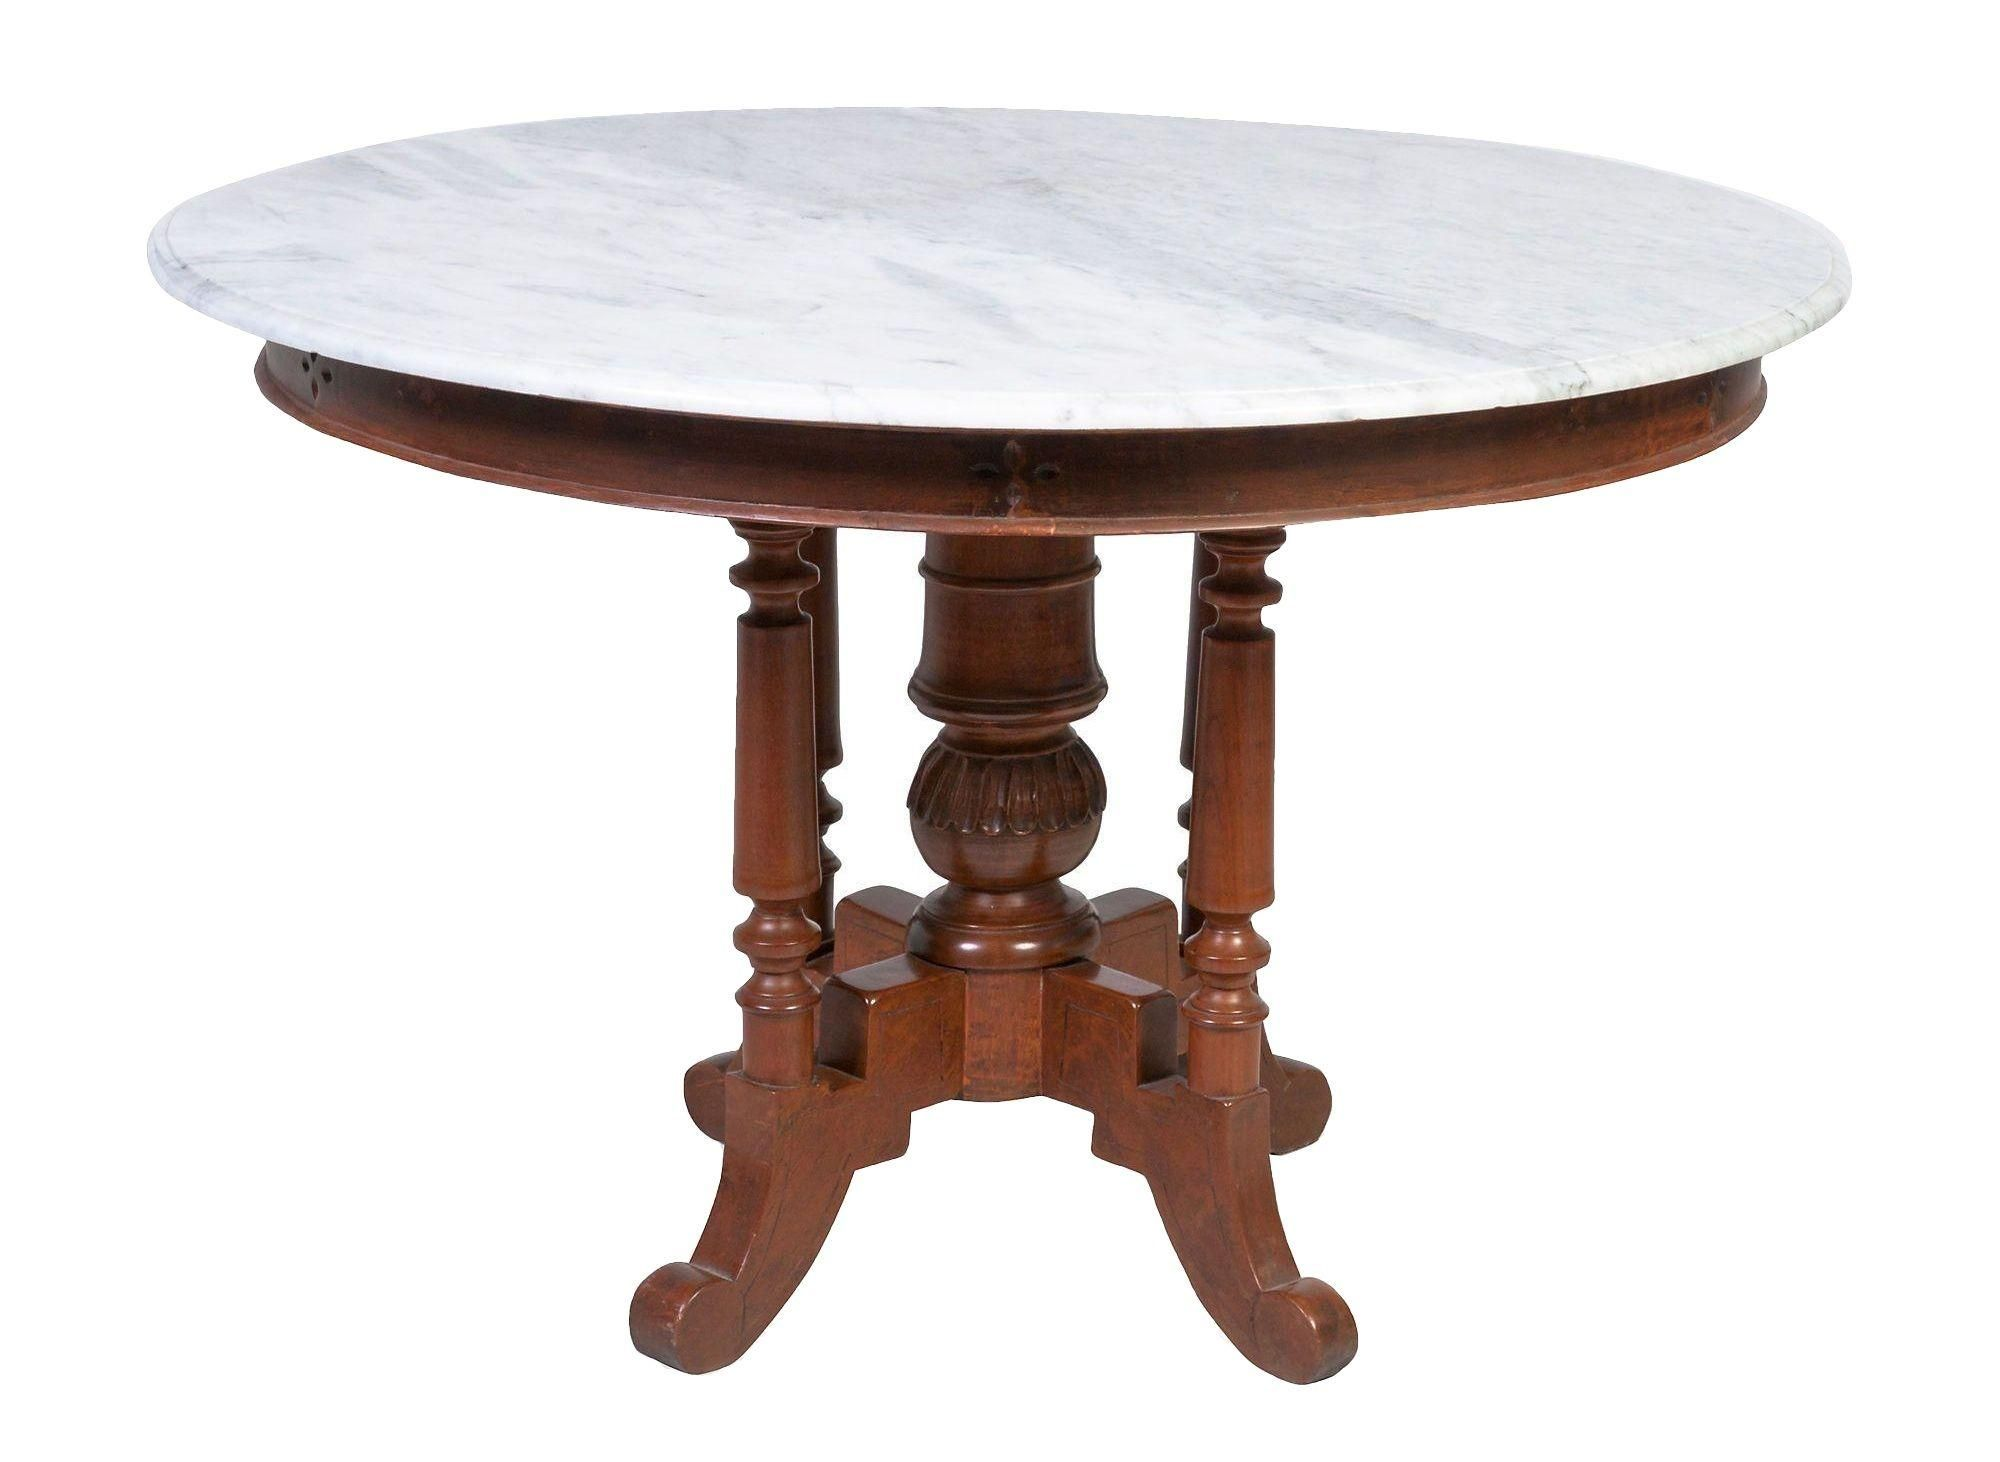 A vintage round dining table with a fabulous white marble top